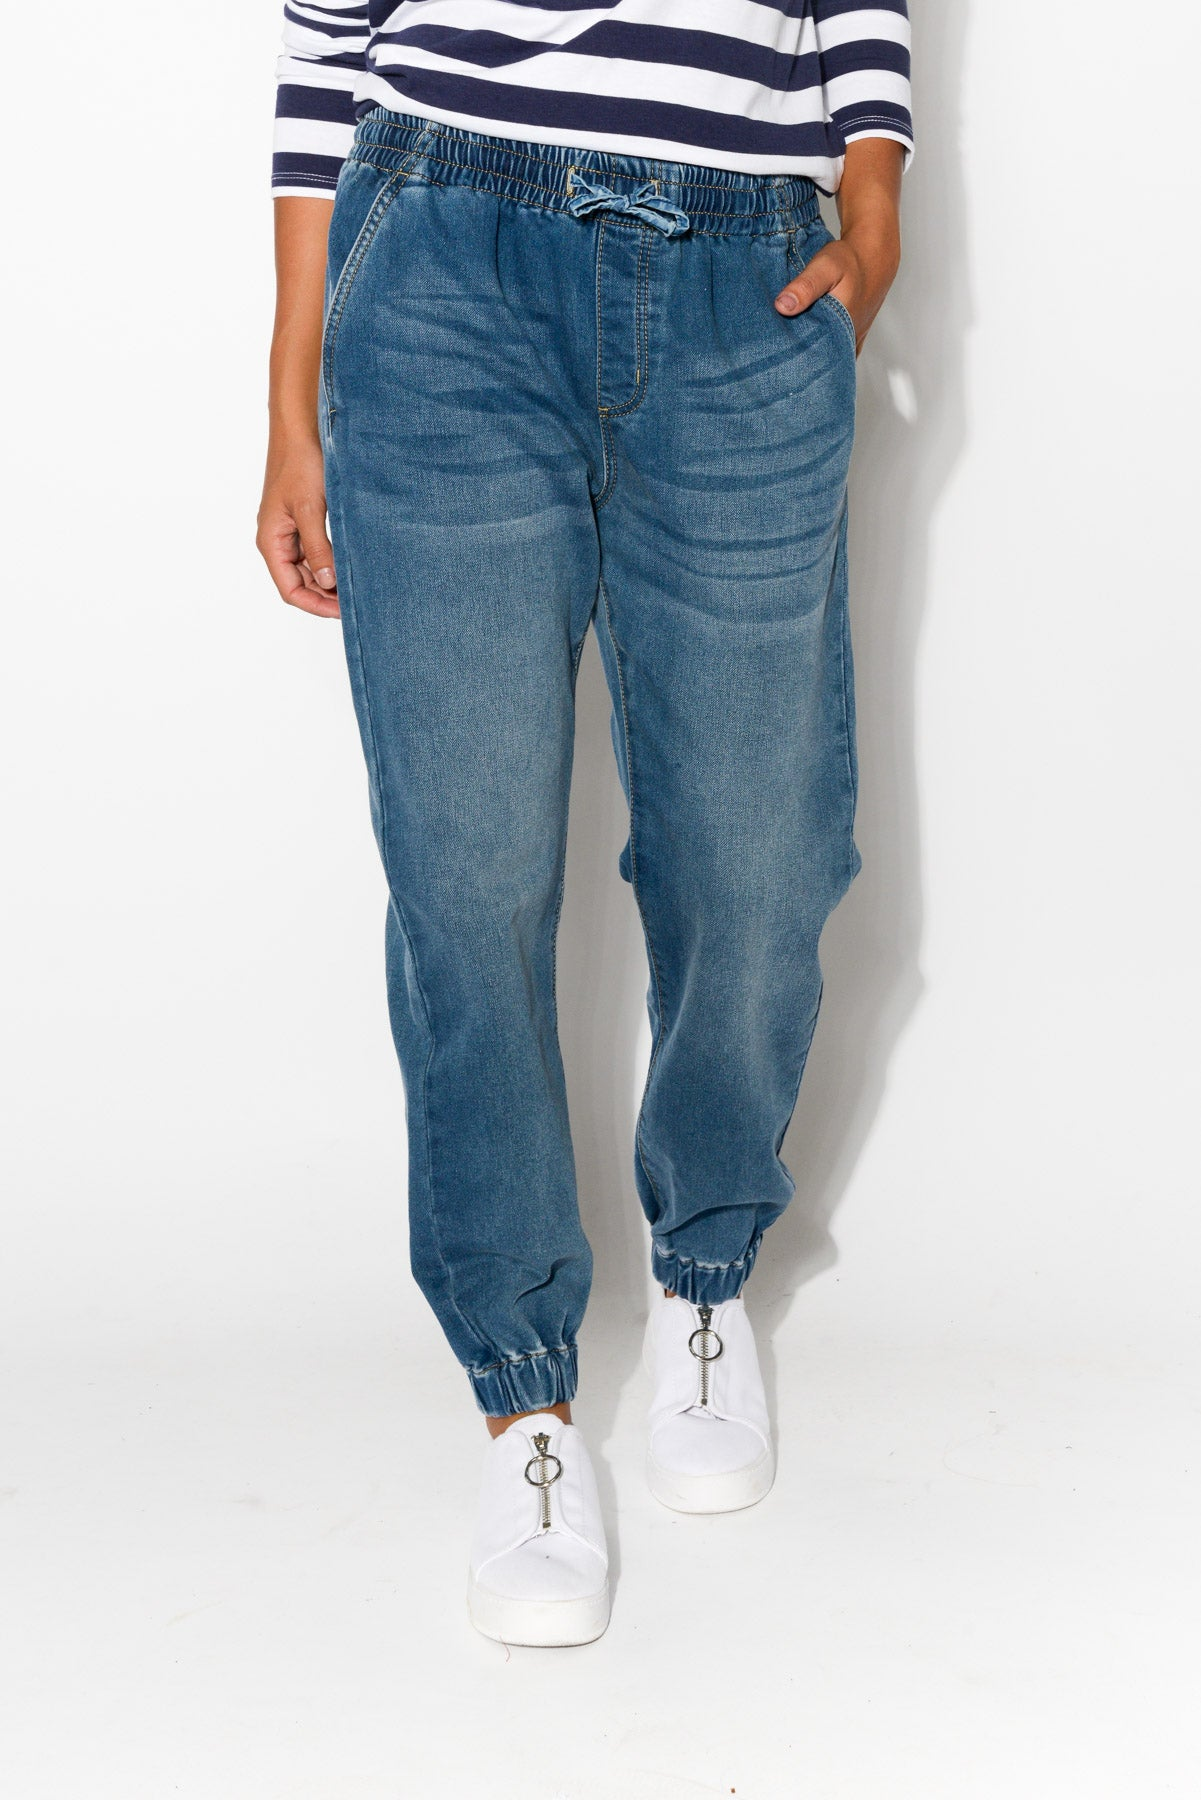 Josy Blue Relaxed Jean - Blue Bungalow